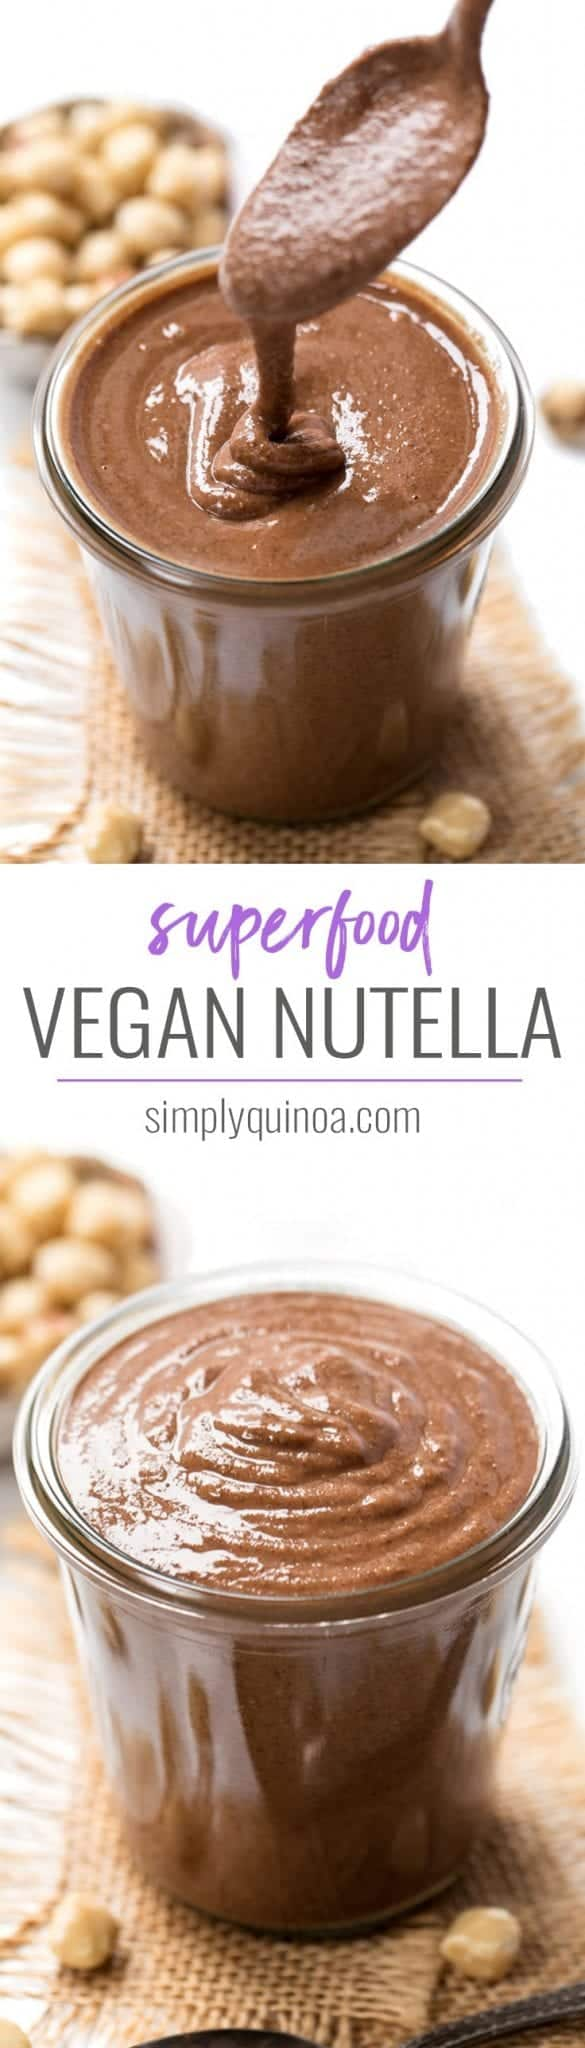 how to make healthy vegan nutella using superfoods